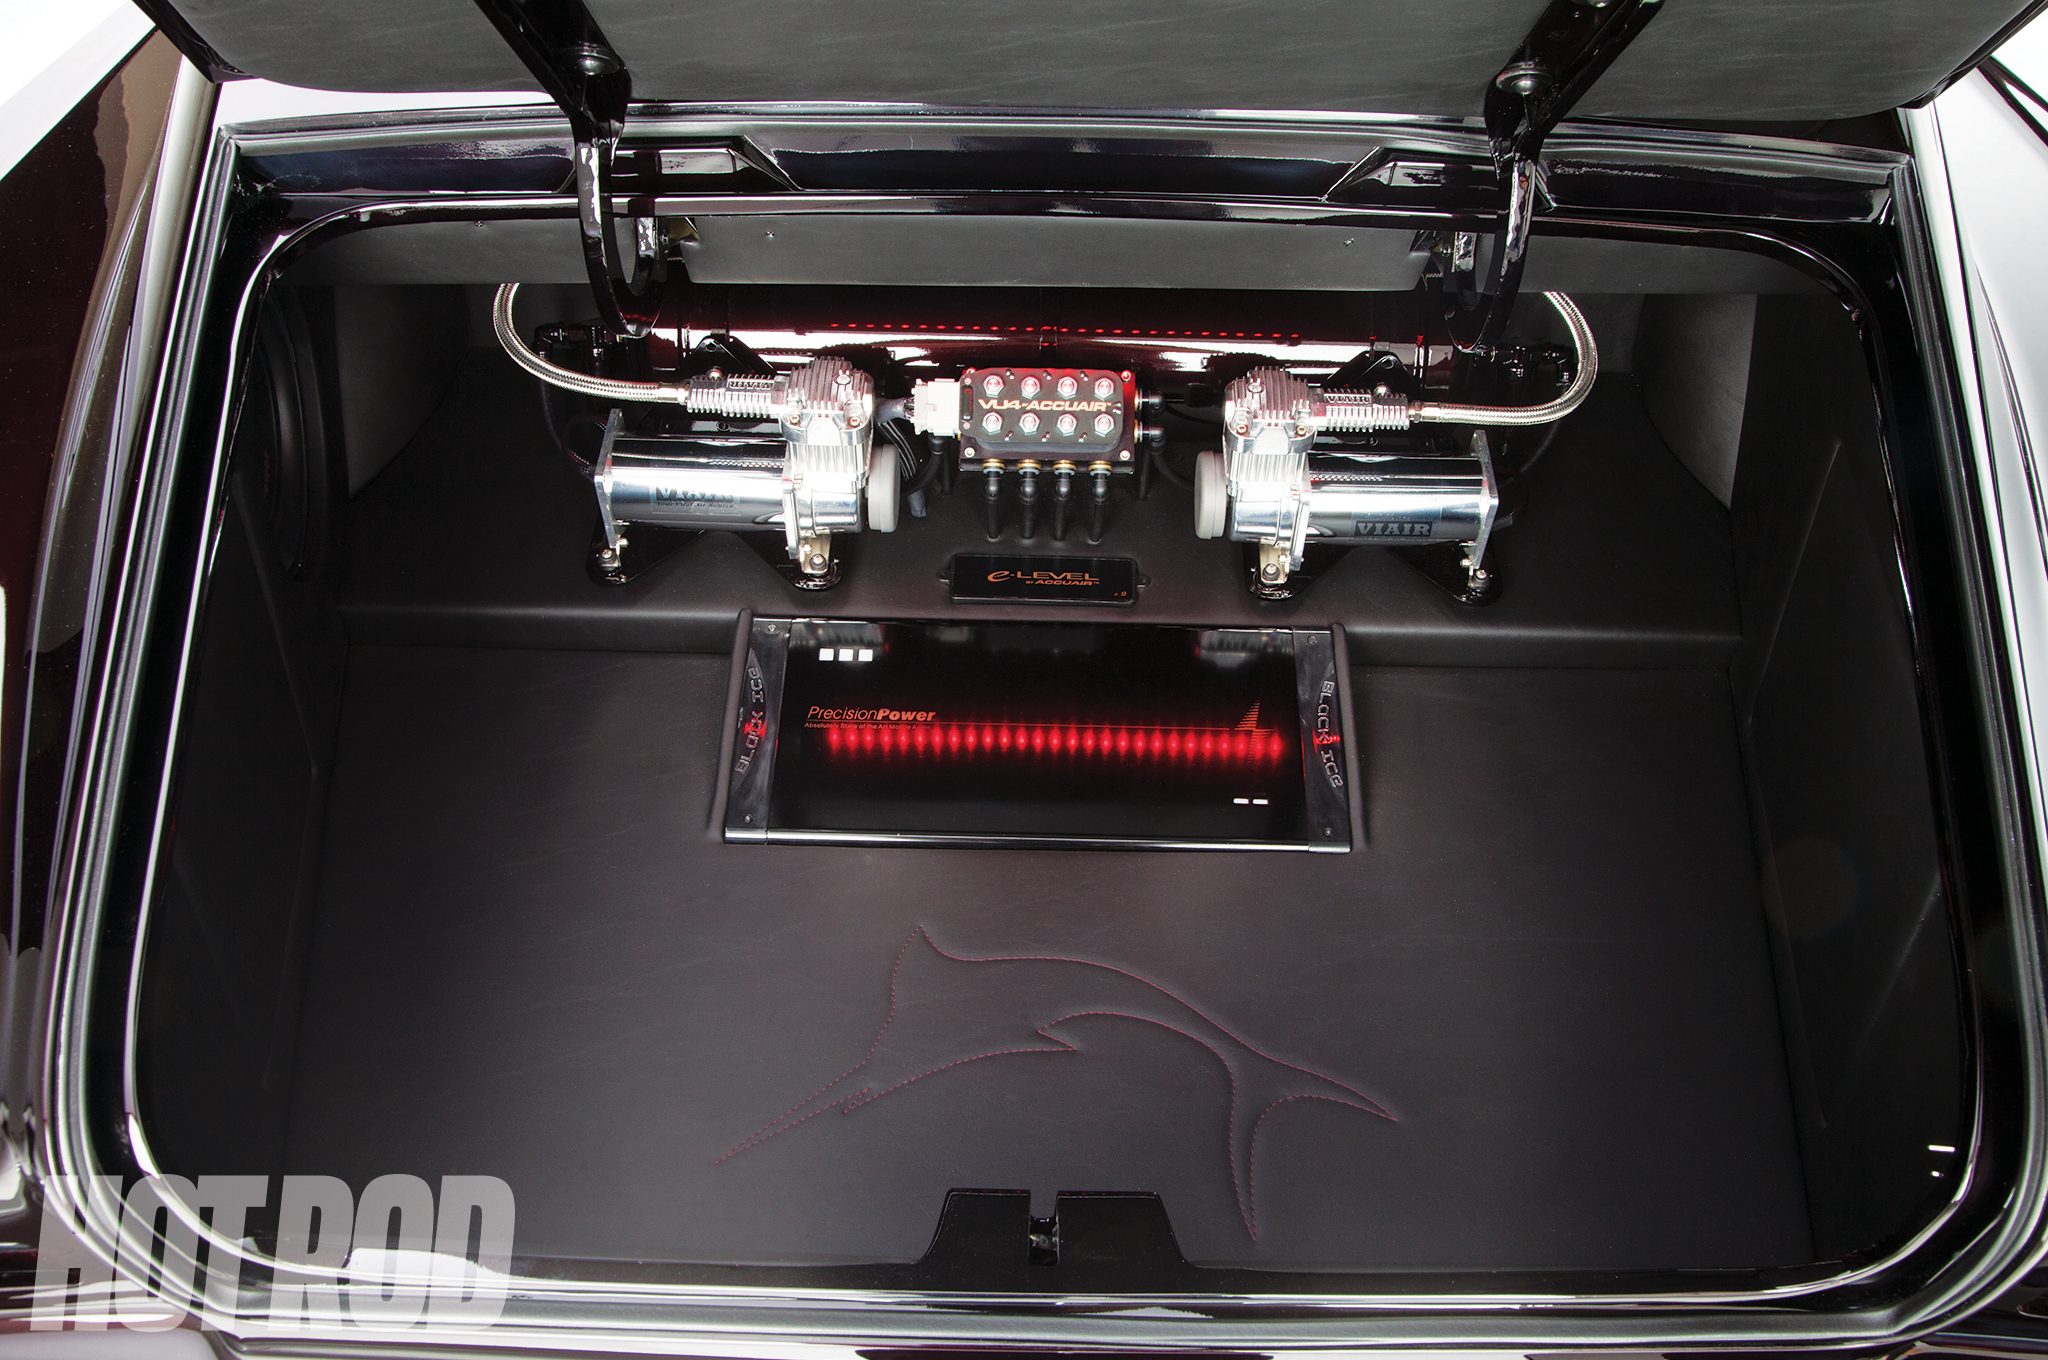 An AccuAir E-level controller and manifold are in the trunk between twin ViAir compressors. The air tank is mounted just ahead under the package tray.